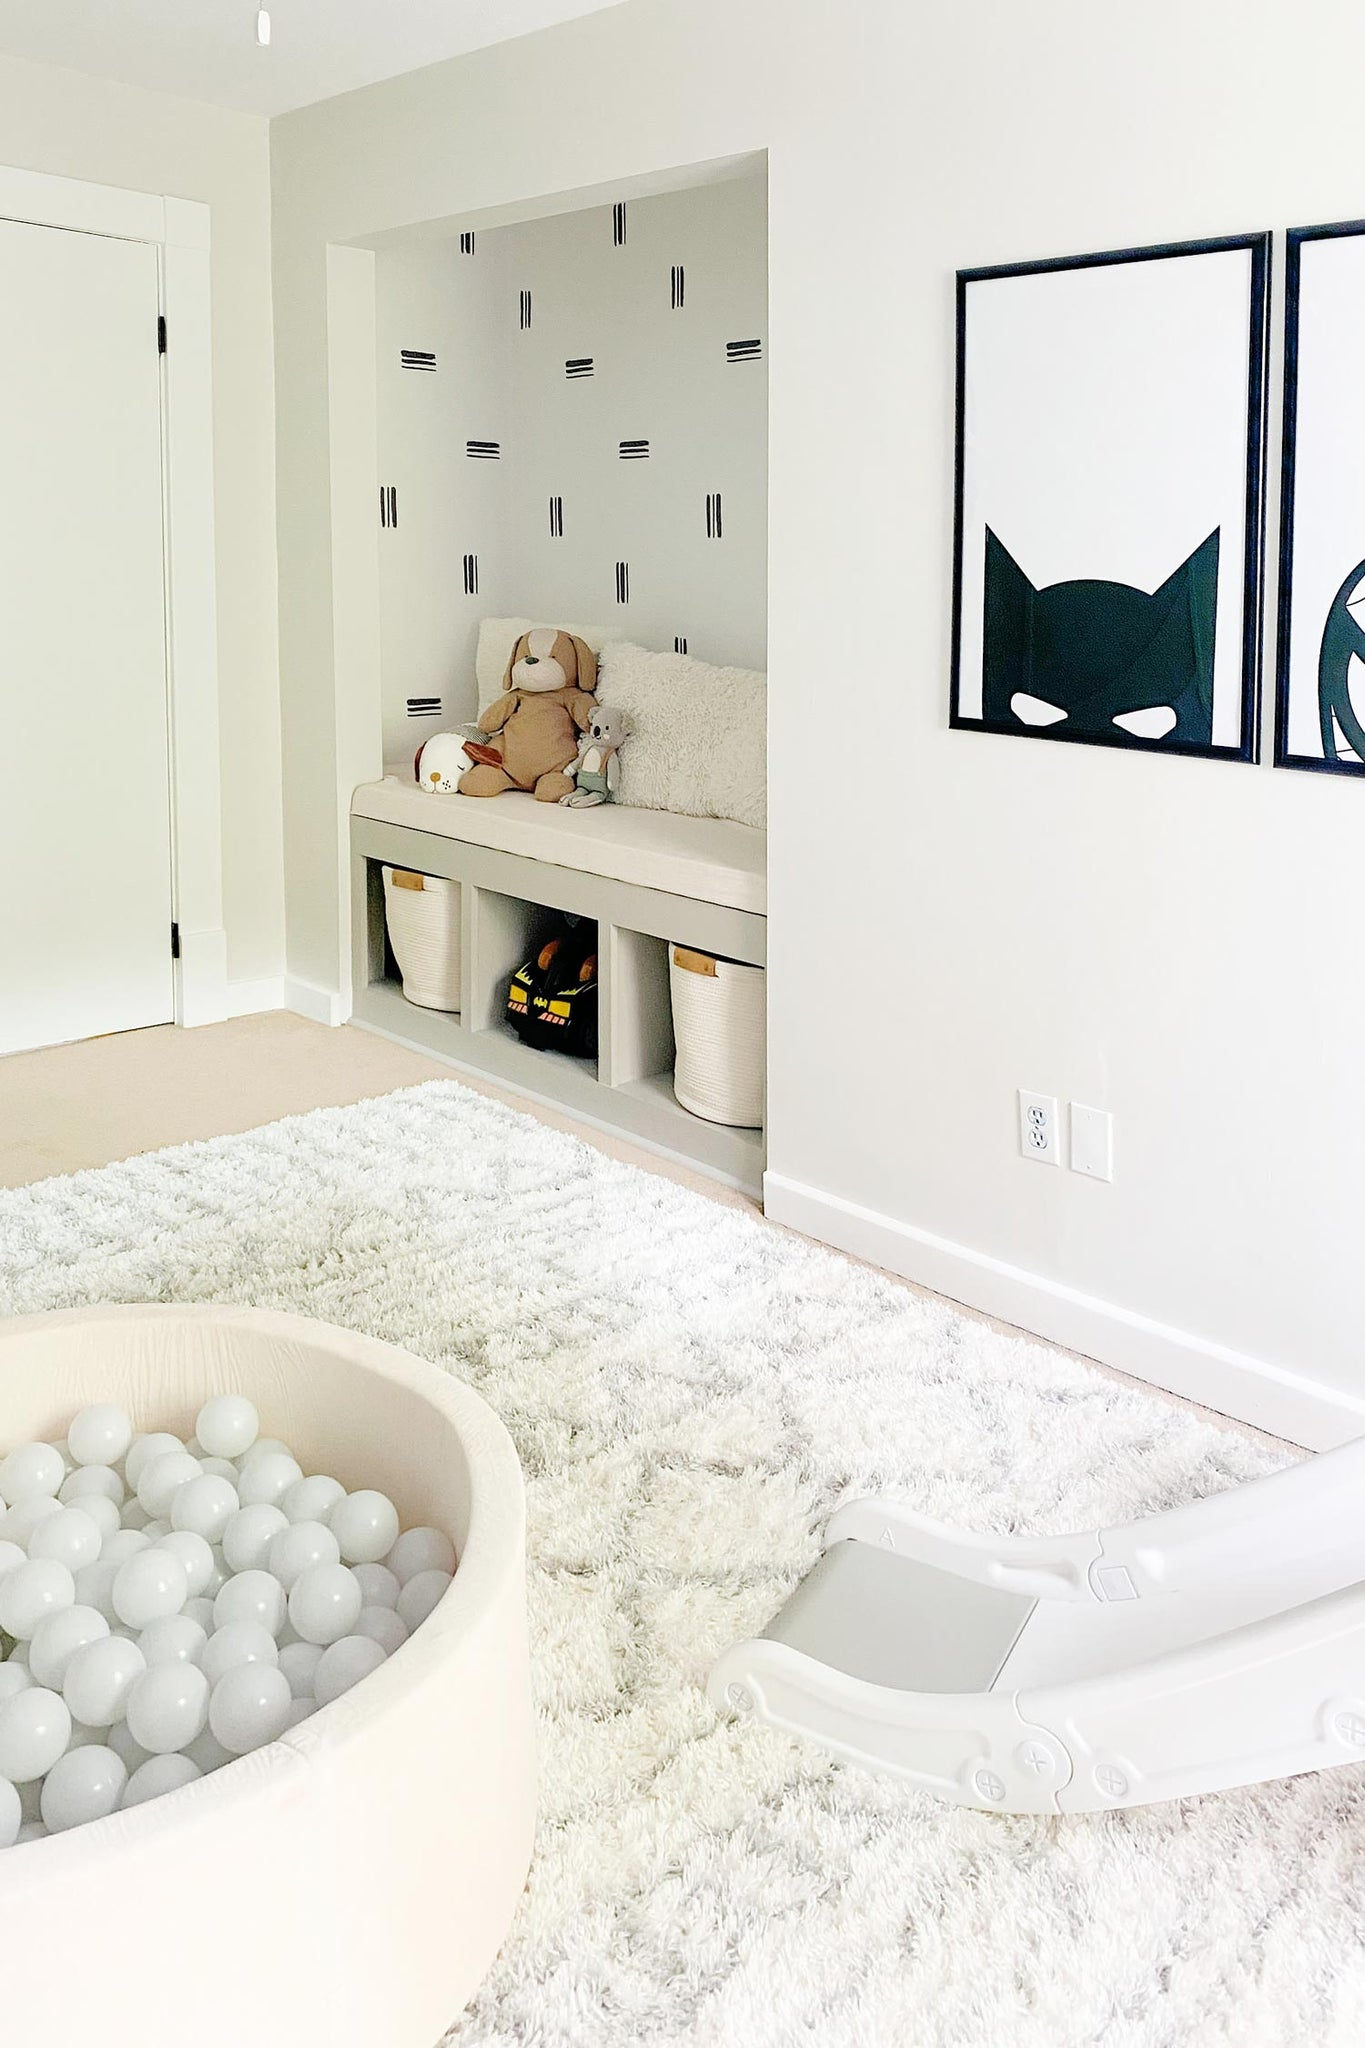 DIY traditional wallpaper project for the toddler playroom